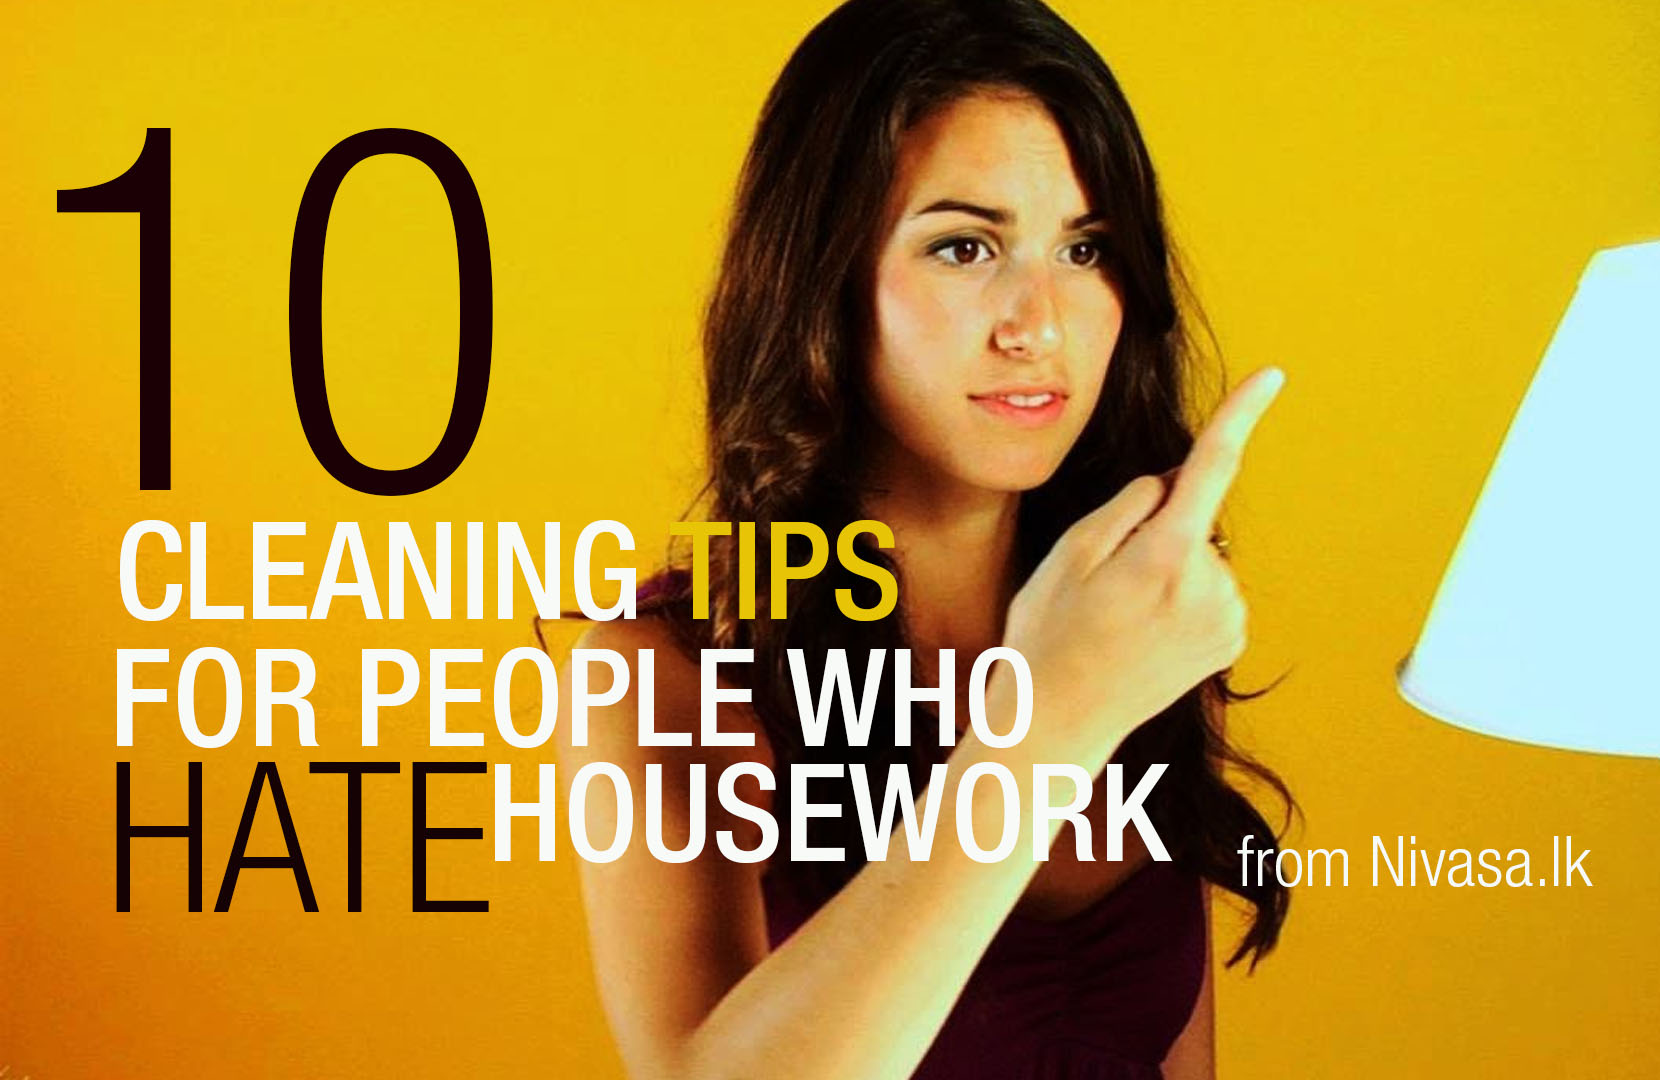 10 Cleaning Tips for People who Hate Housework